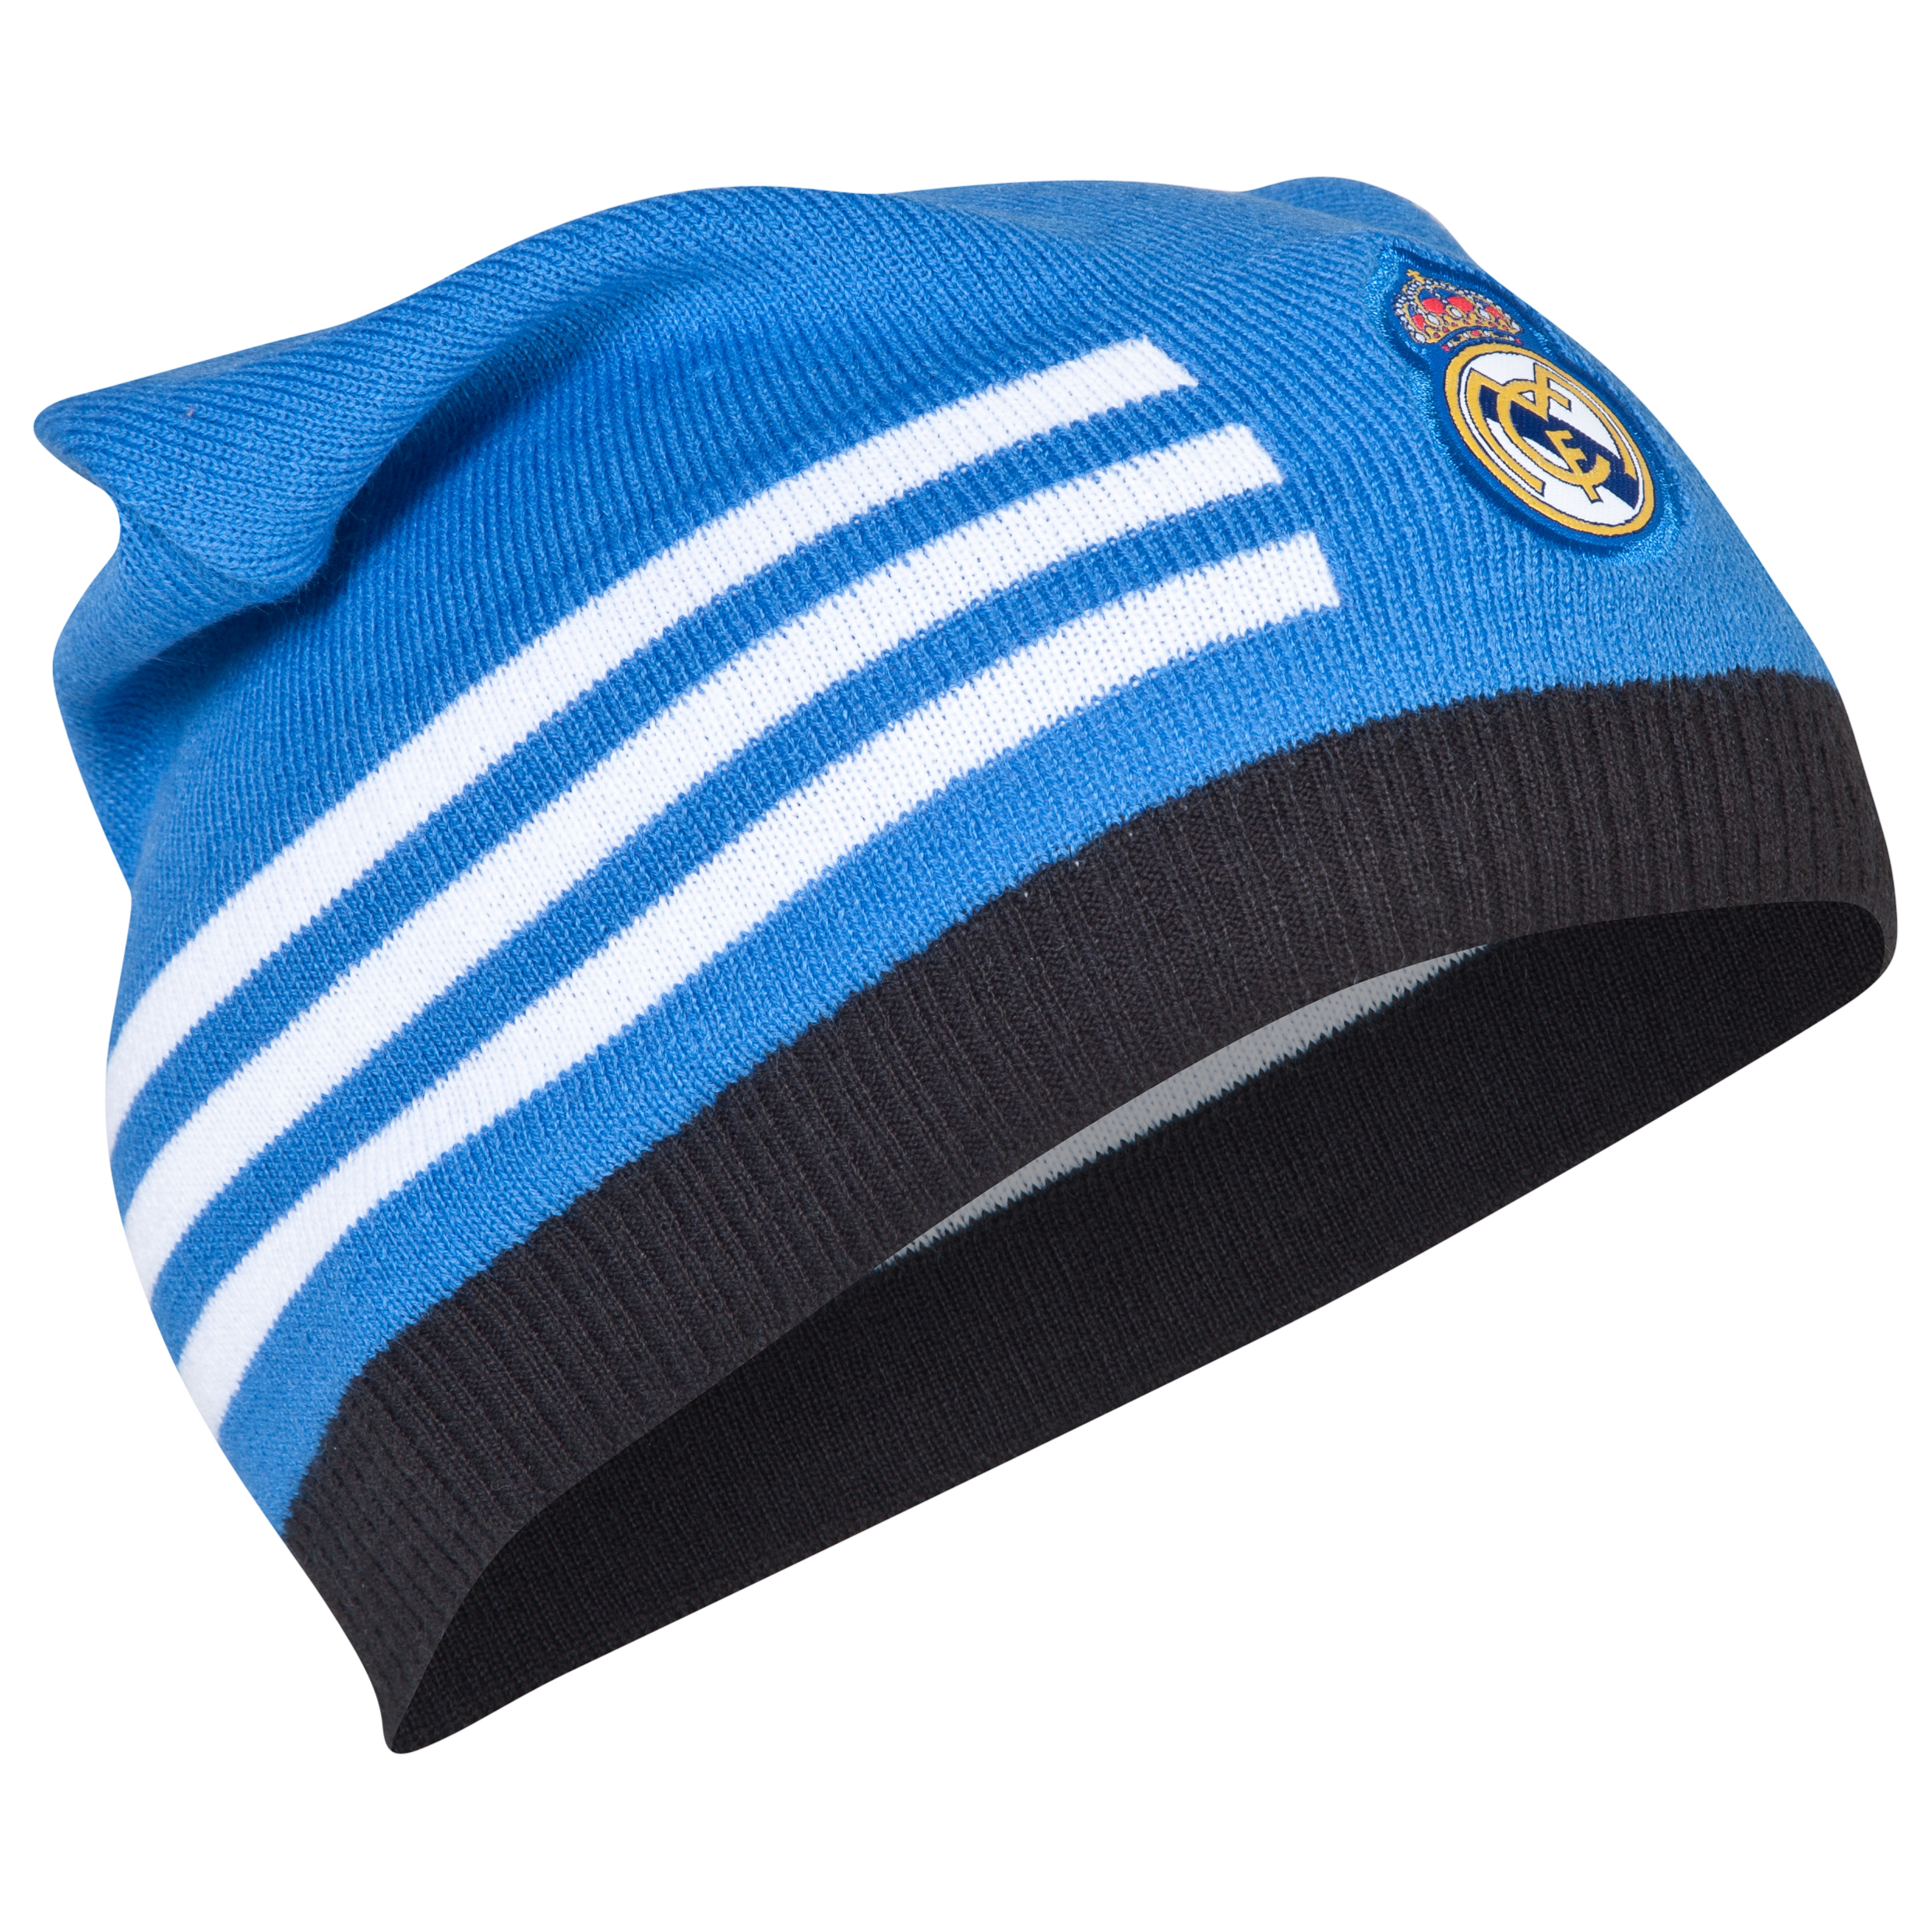 Real Madrid 3 stripe Beanie - Mens Blue